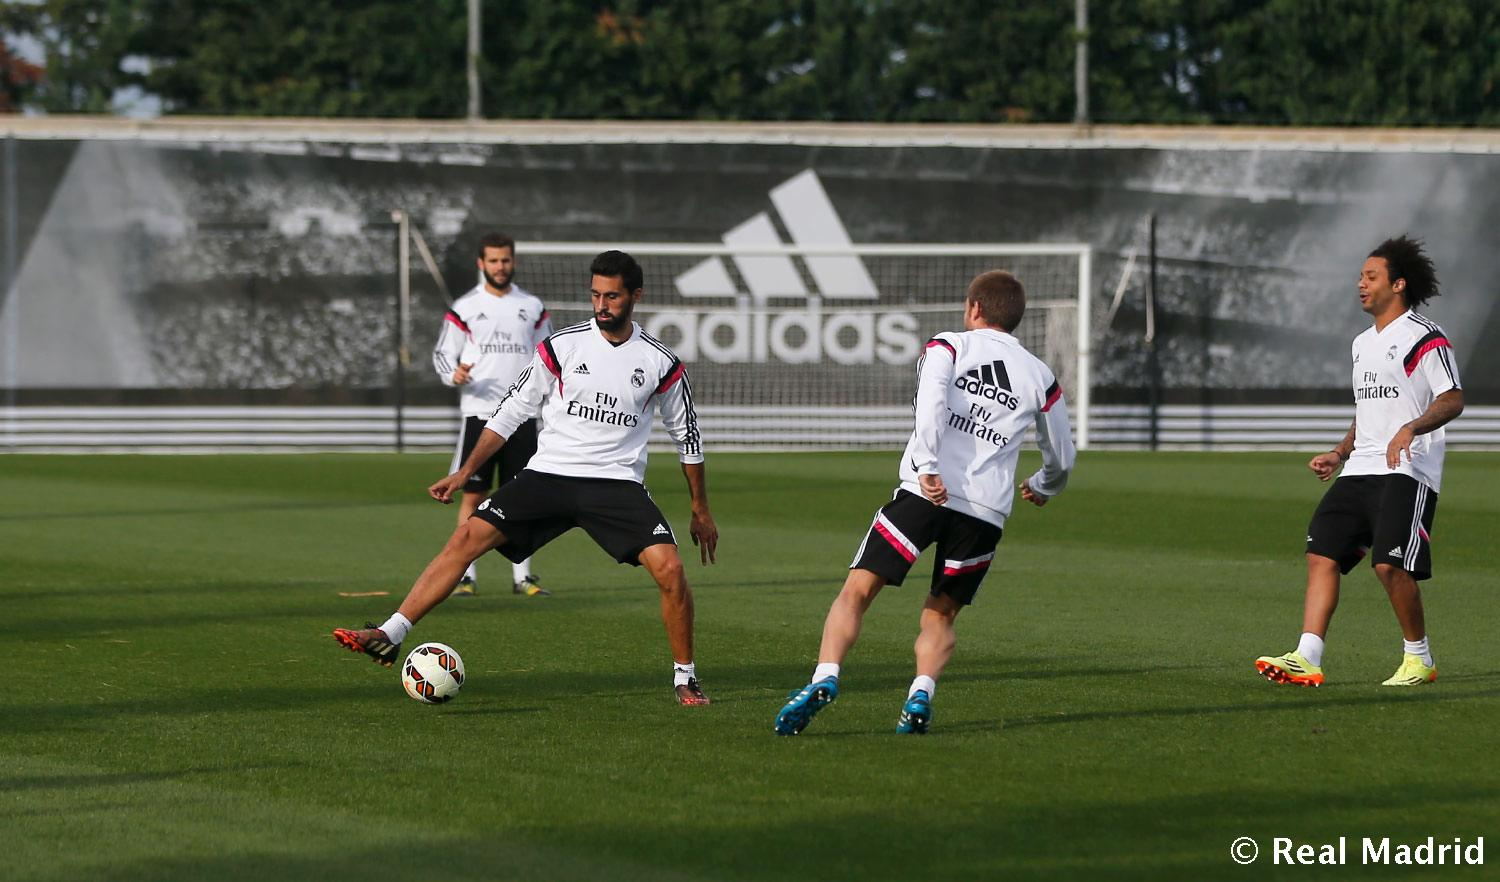 Real Madrid - Entrenamiento del Real Madrid - 13-10-2014